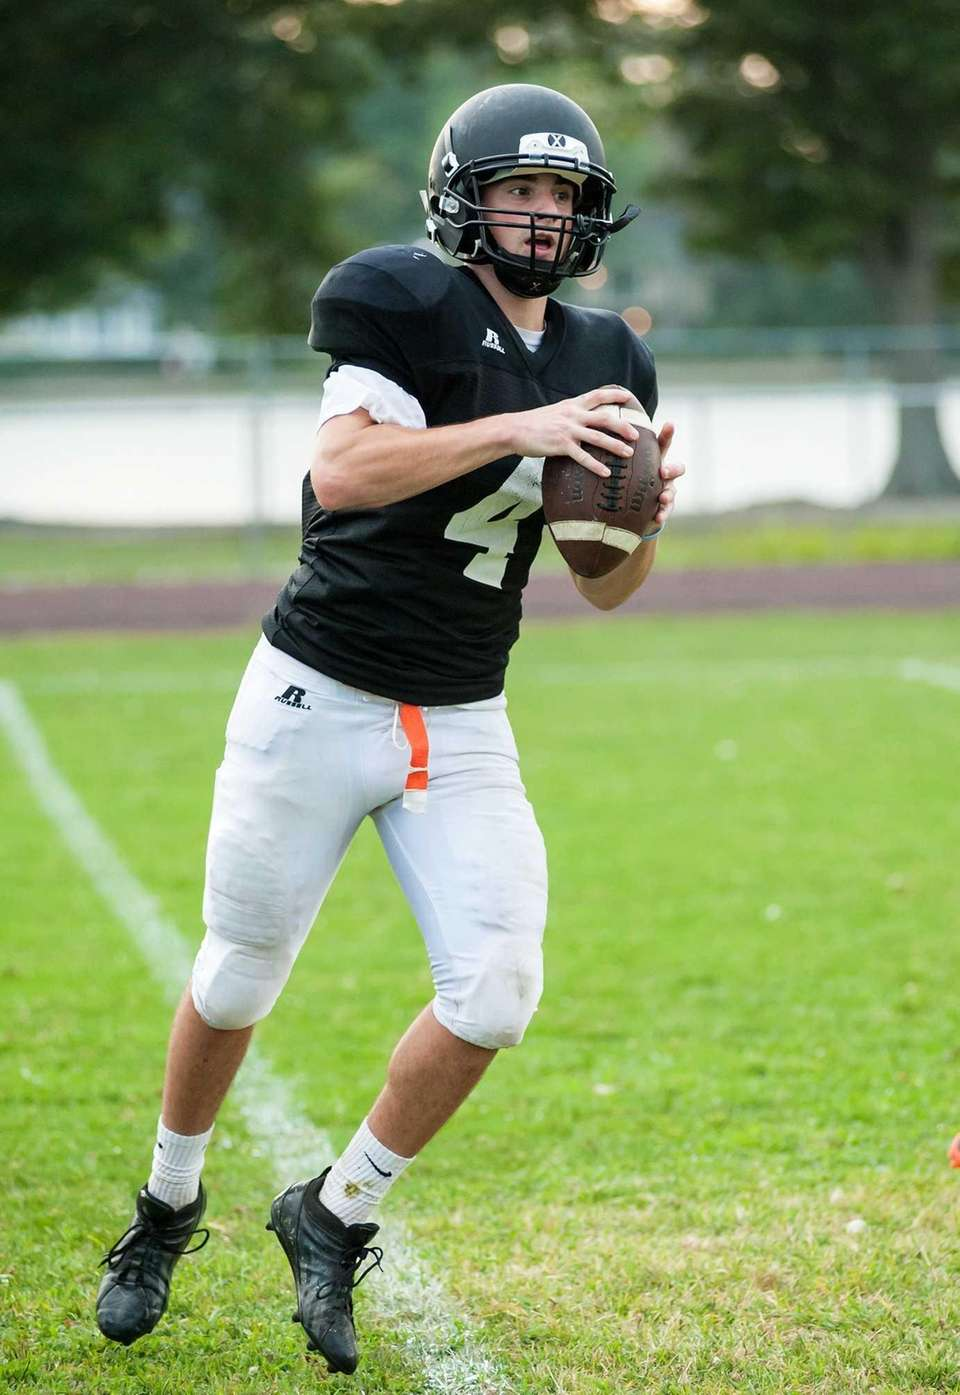 Babylon's Nick Santorelli during practice. (Aug. 26, 2013)